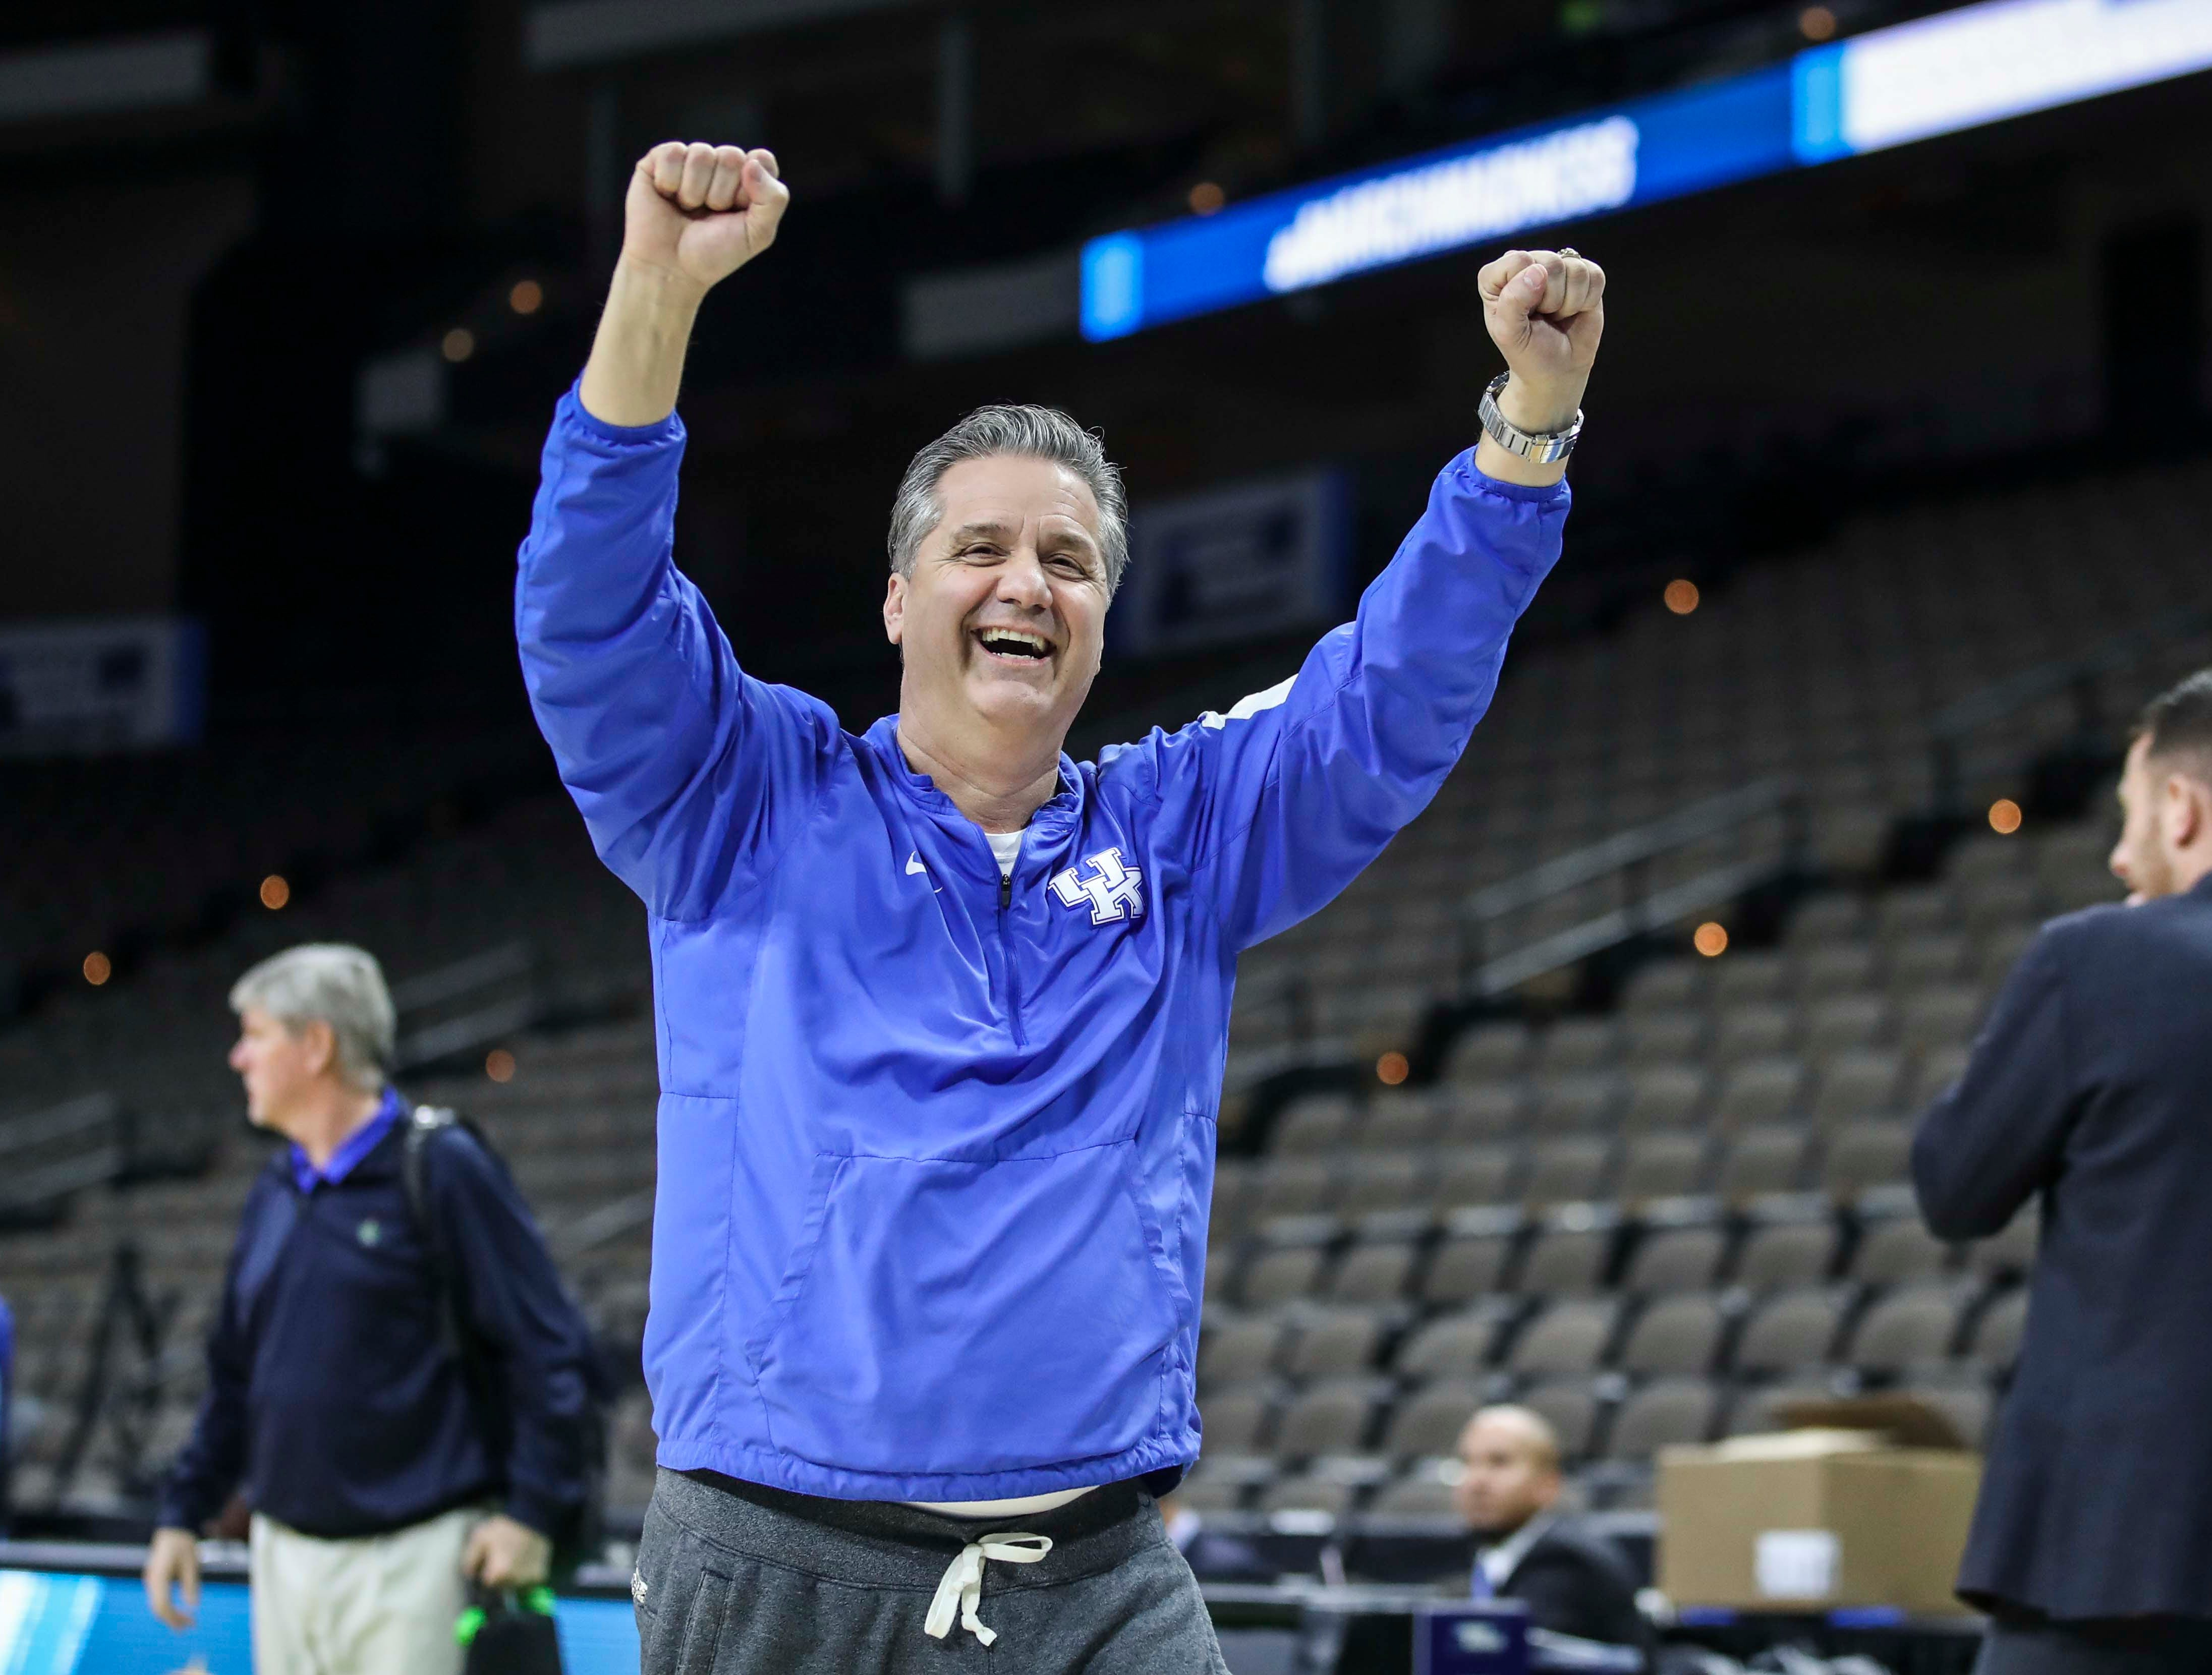 Kentucky coach John Calipari cheered as he spotted Belmont coach Rick Byrd during tourney practice Wednesday afternoon in Jacksonville. March 20, 2019